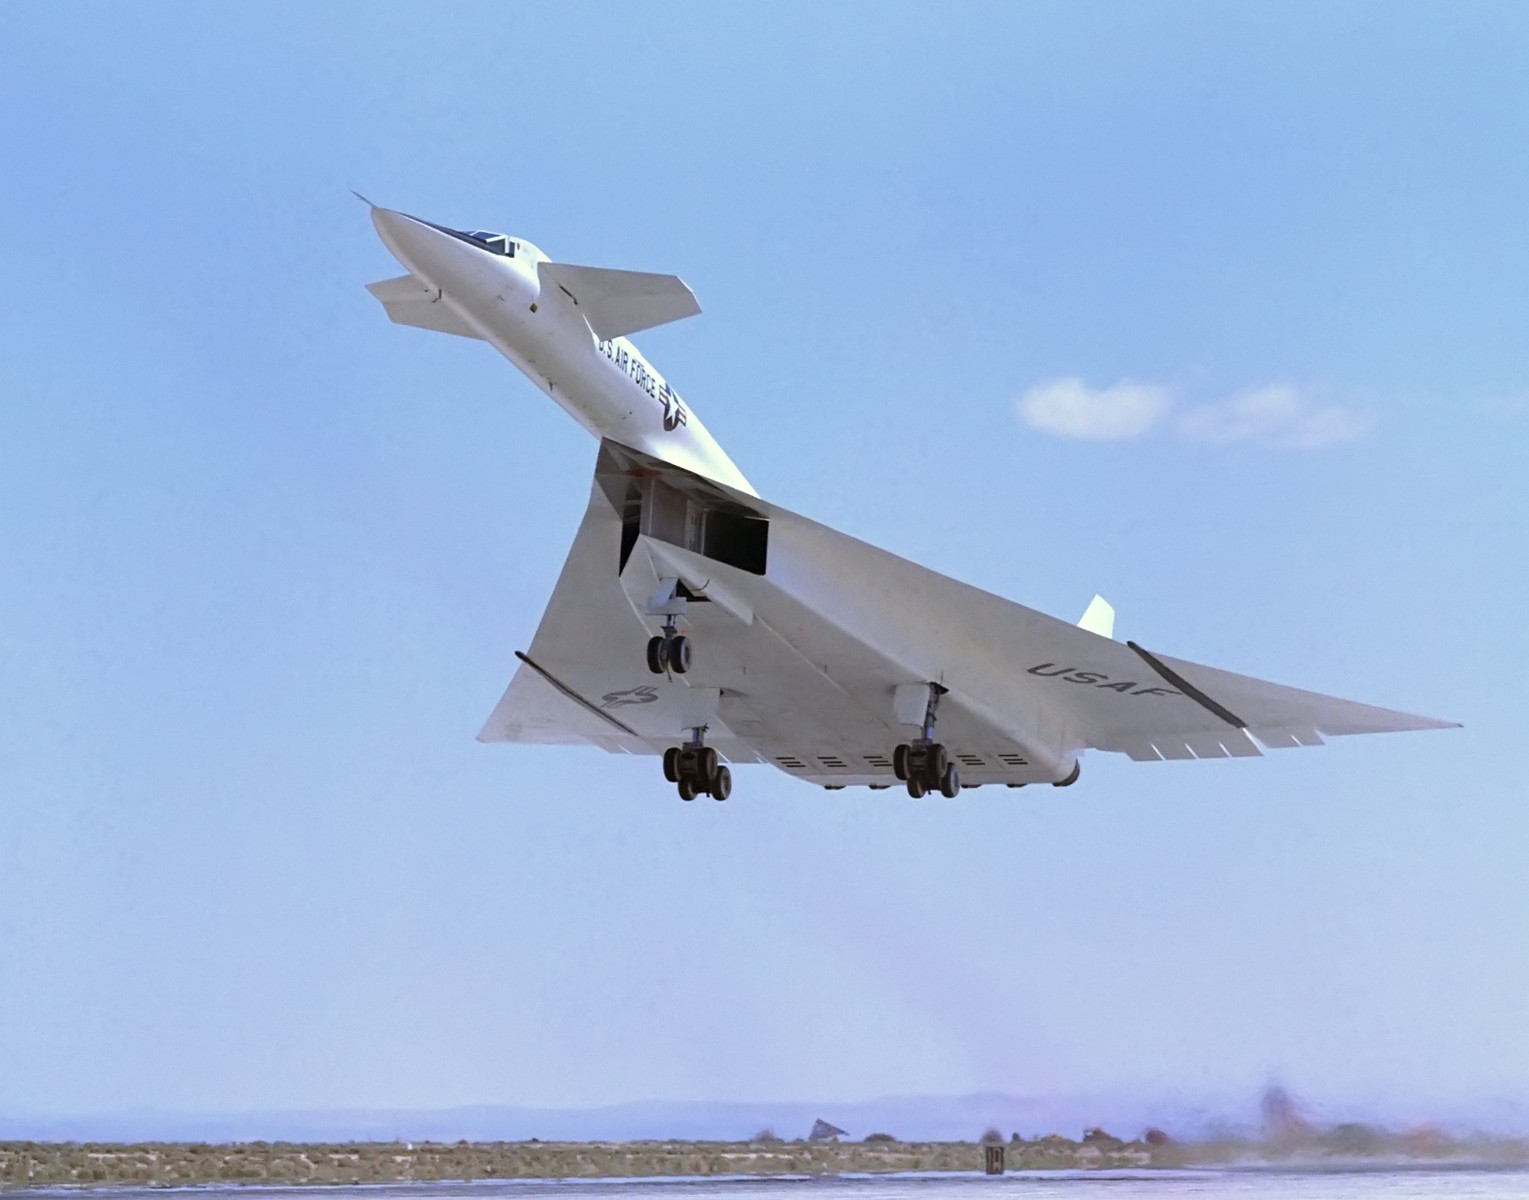 189 foot Mach 3 monster, the North American XB-70 Valkyrie to become more accessible to museum visitors